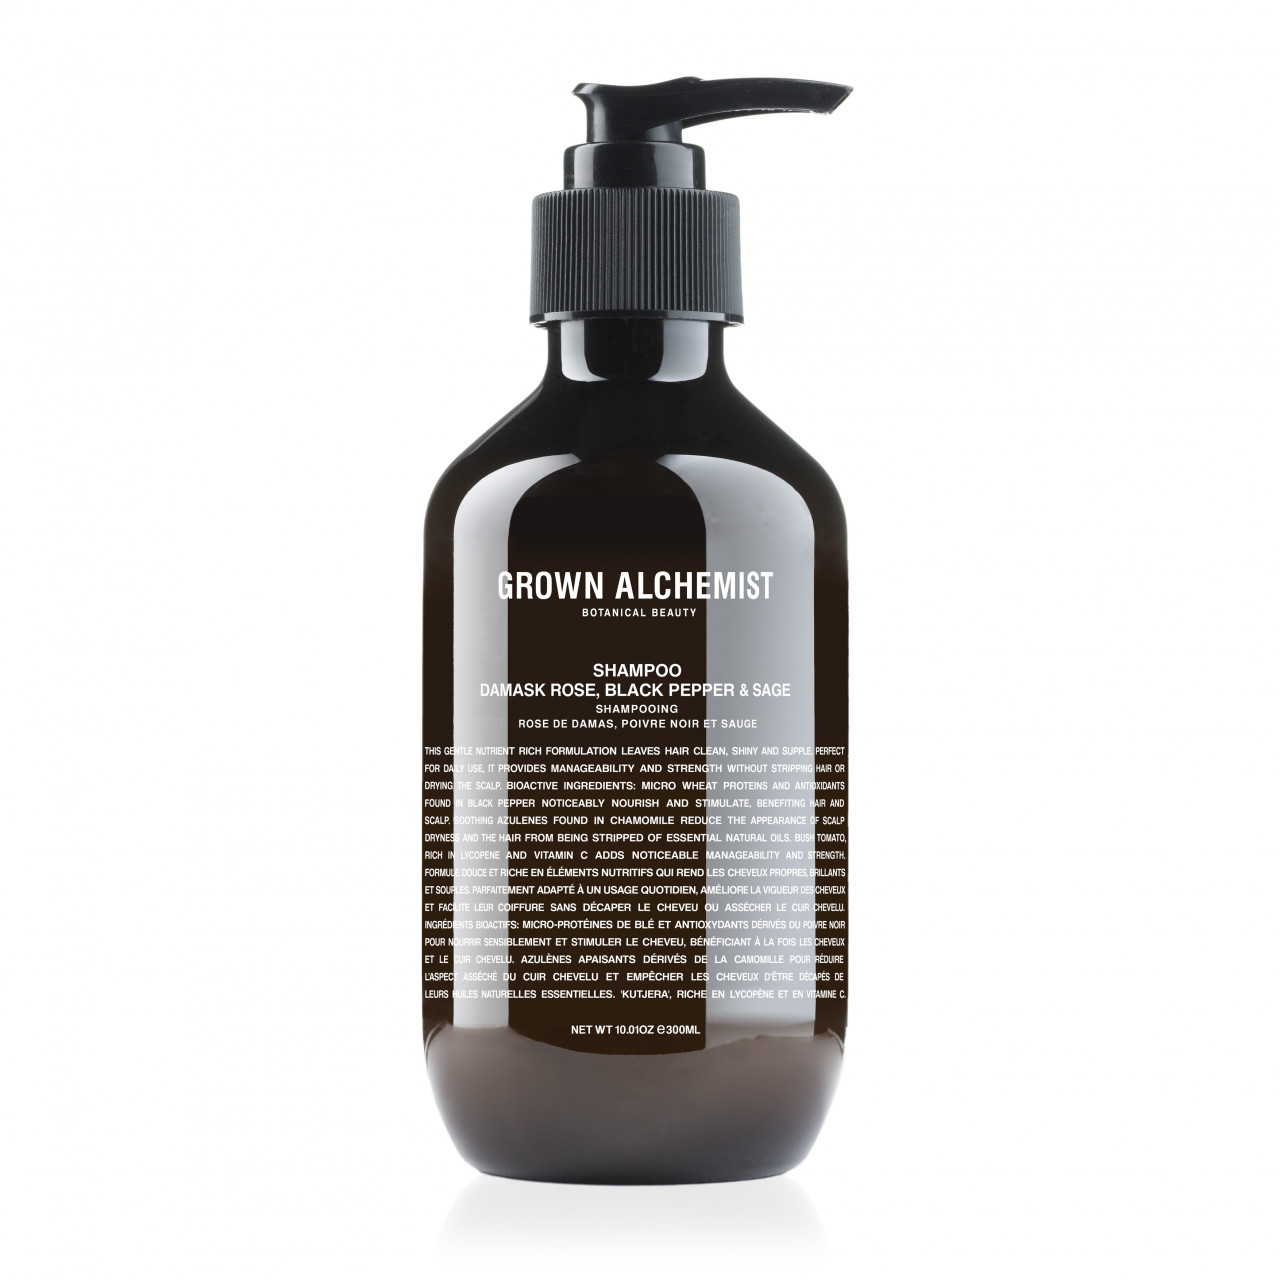 Grown Alchemist ´´Shampoo Damask Rose, Black Pepper & Sage´´